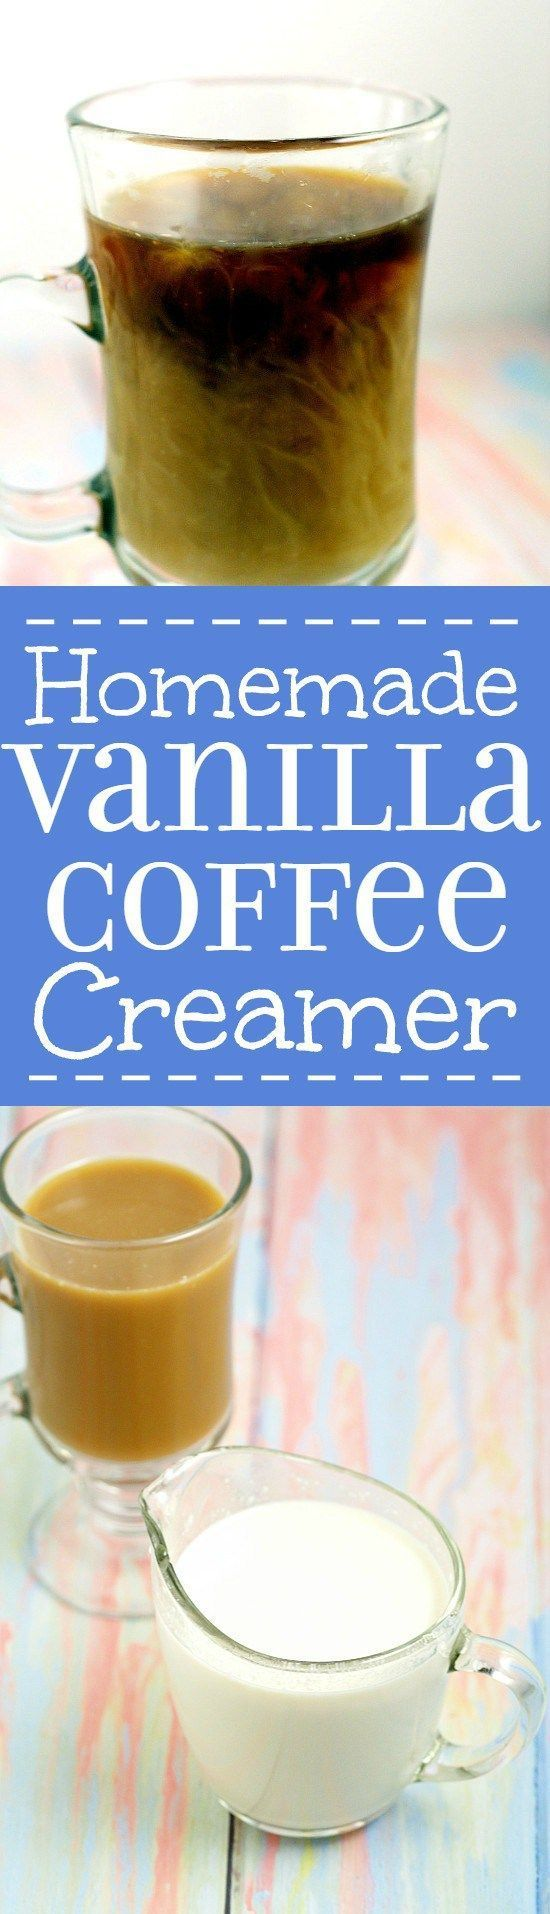 Homemade Vanilla Coffee Creamer #frenchvanillacreamerrecipe Easy and classic Homemade Vanilla Creamer recipe is frugal and delicious way to make your morning coffee a special treat. Easy to make with just 4 ingredients! Perfect! So easy to make and tastes just like store bought coffee creamer! #frenchvanillacreamerrecipe Homemade Vanilla Coffee Creamer #frenchvanillacreamerrecipe Easy and classic Homemade Vanilla Creamer recipe is frugal and delicious way to make your morning coffee a special #frenchvanillacreamerrecipe